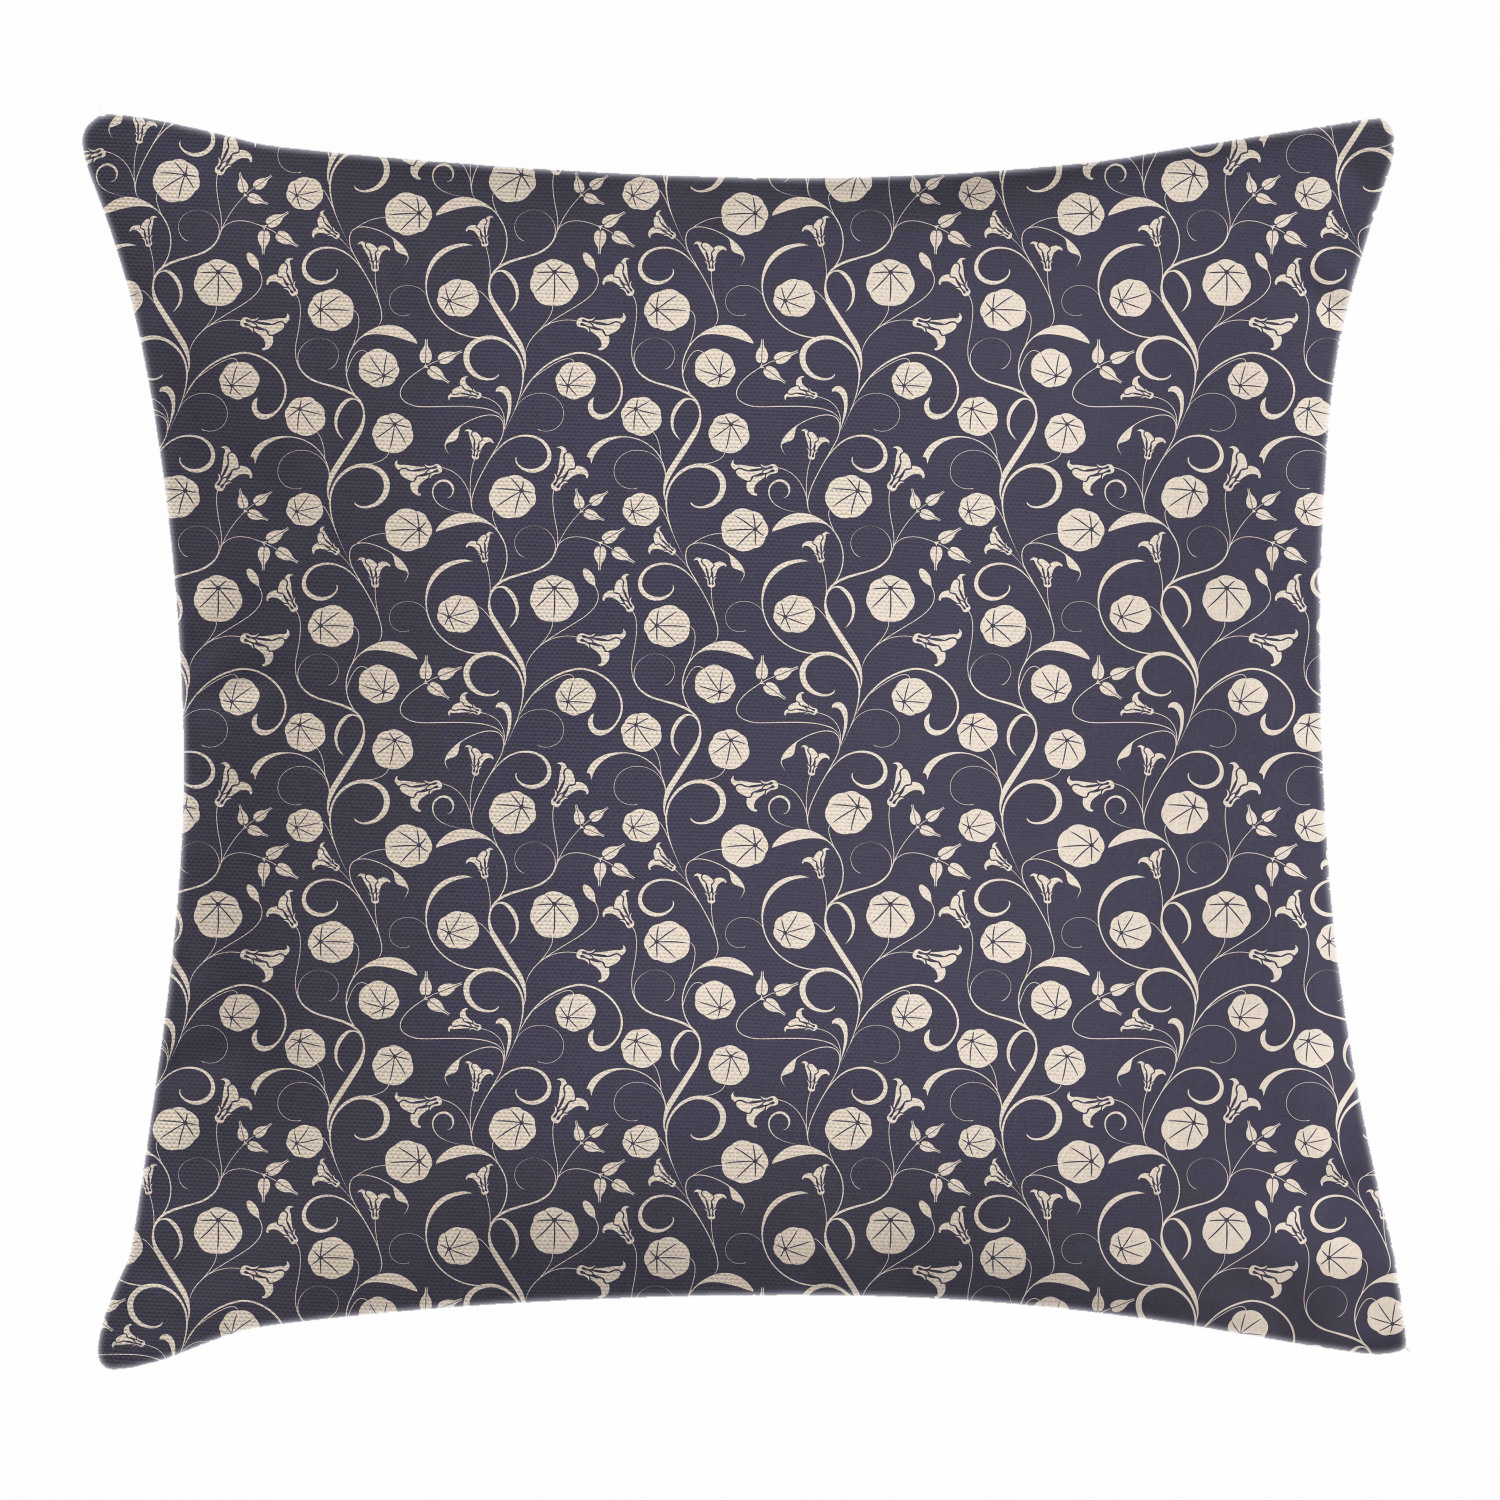 Floral Throw Pillow Cushion Cover Abstract Silhouettes Of Romantic Flowers Swirling Stems And Leaves Decorative Square Accent Pillow Case 16 X 16 Inches Dark Blue Grey And Beige By Ambesonne Walmart Com